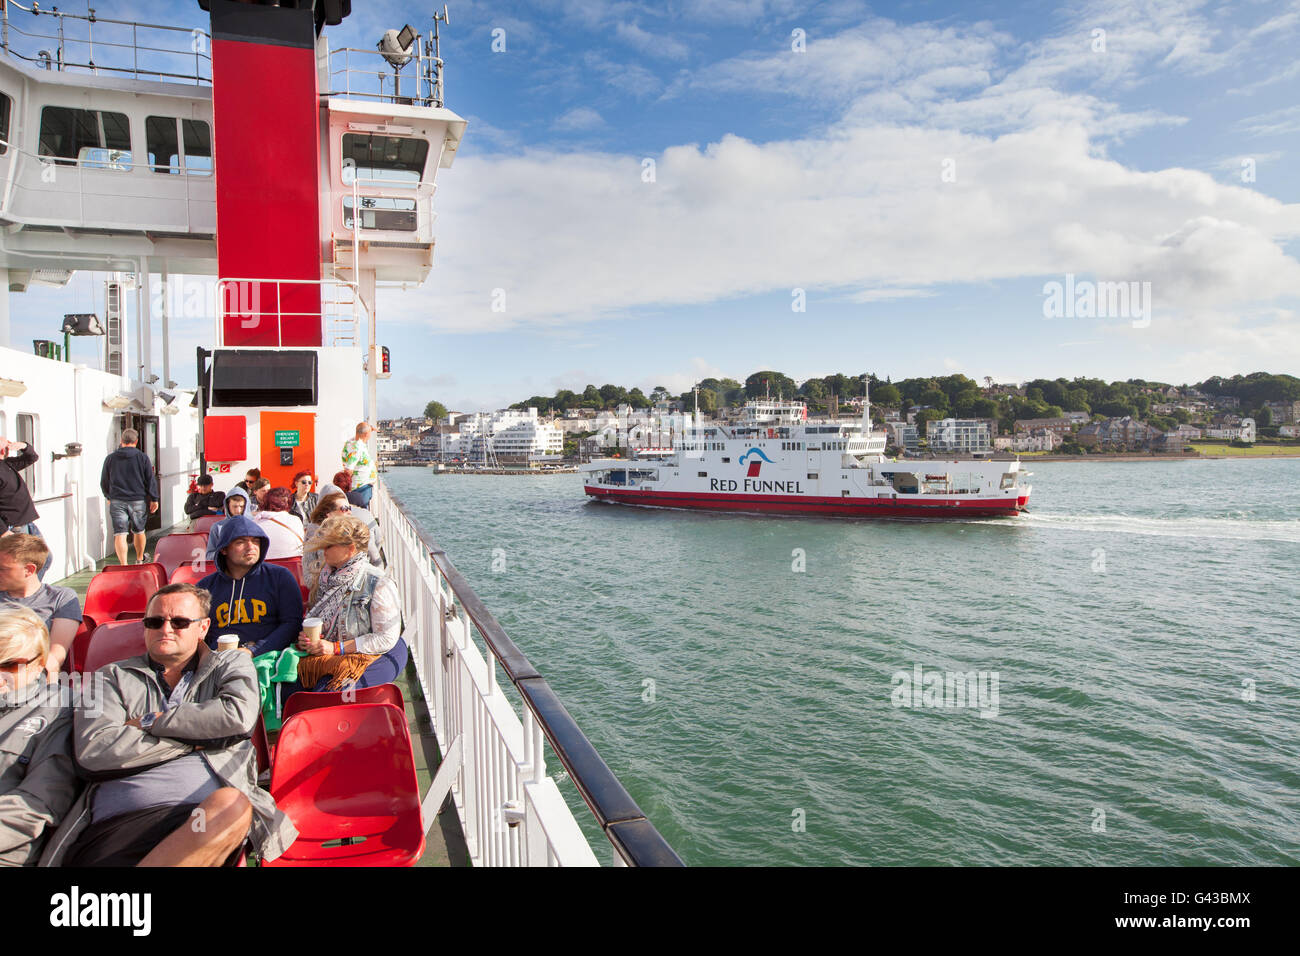 Red Funnel Ferry crossing The Solent between Southampton and Cowes on the Isle of Wight - Stock Image